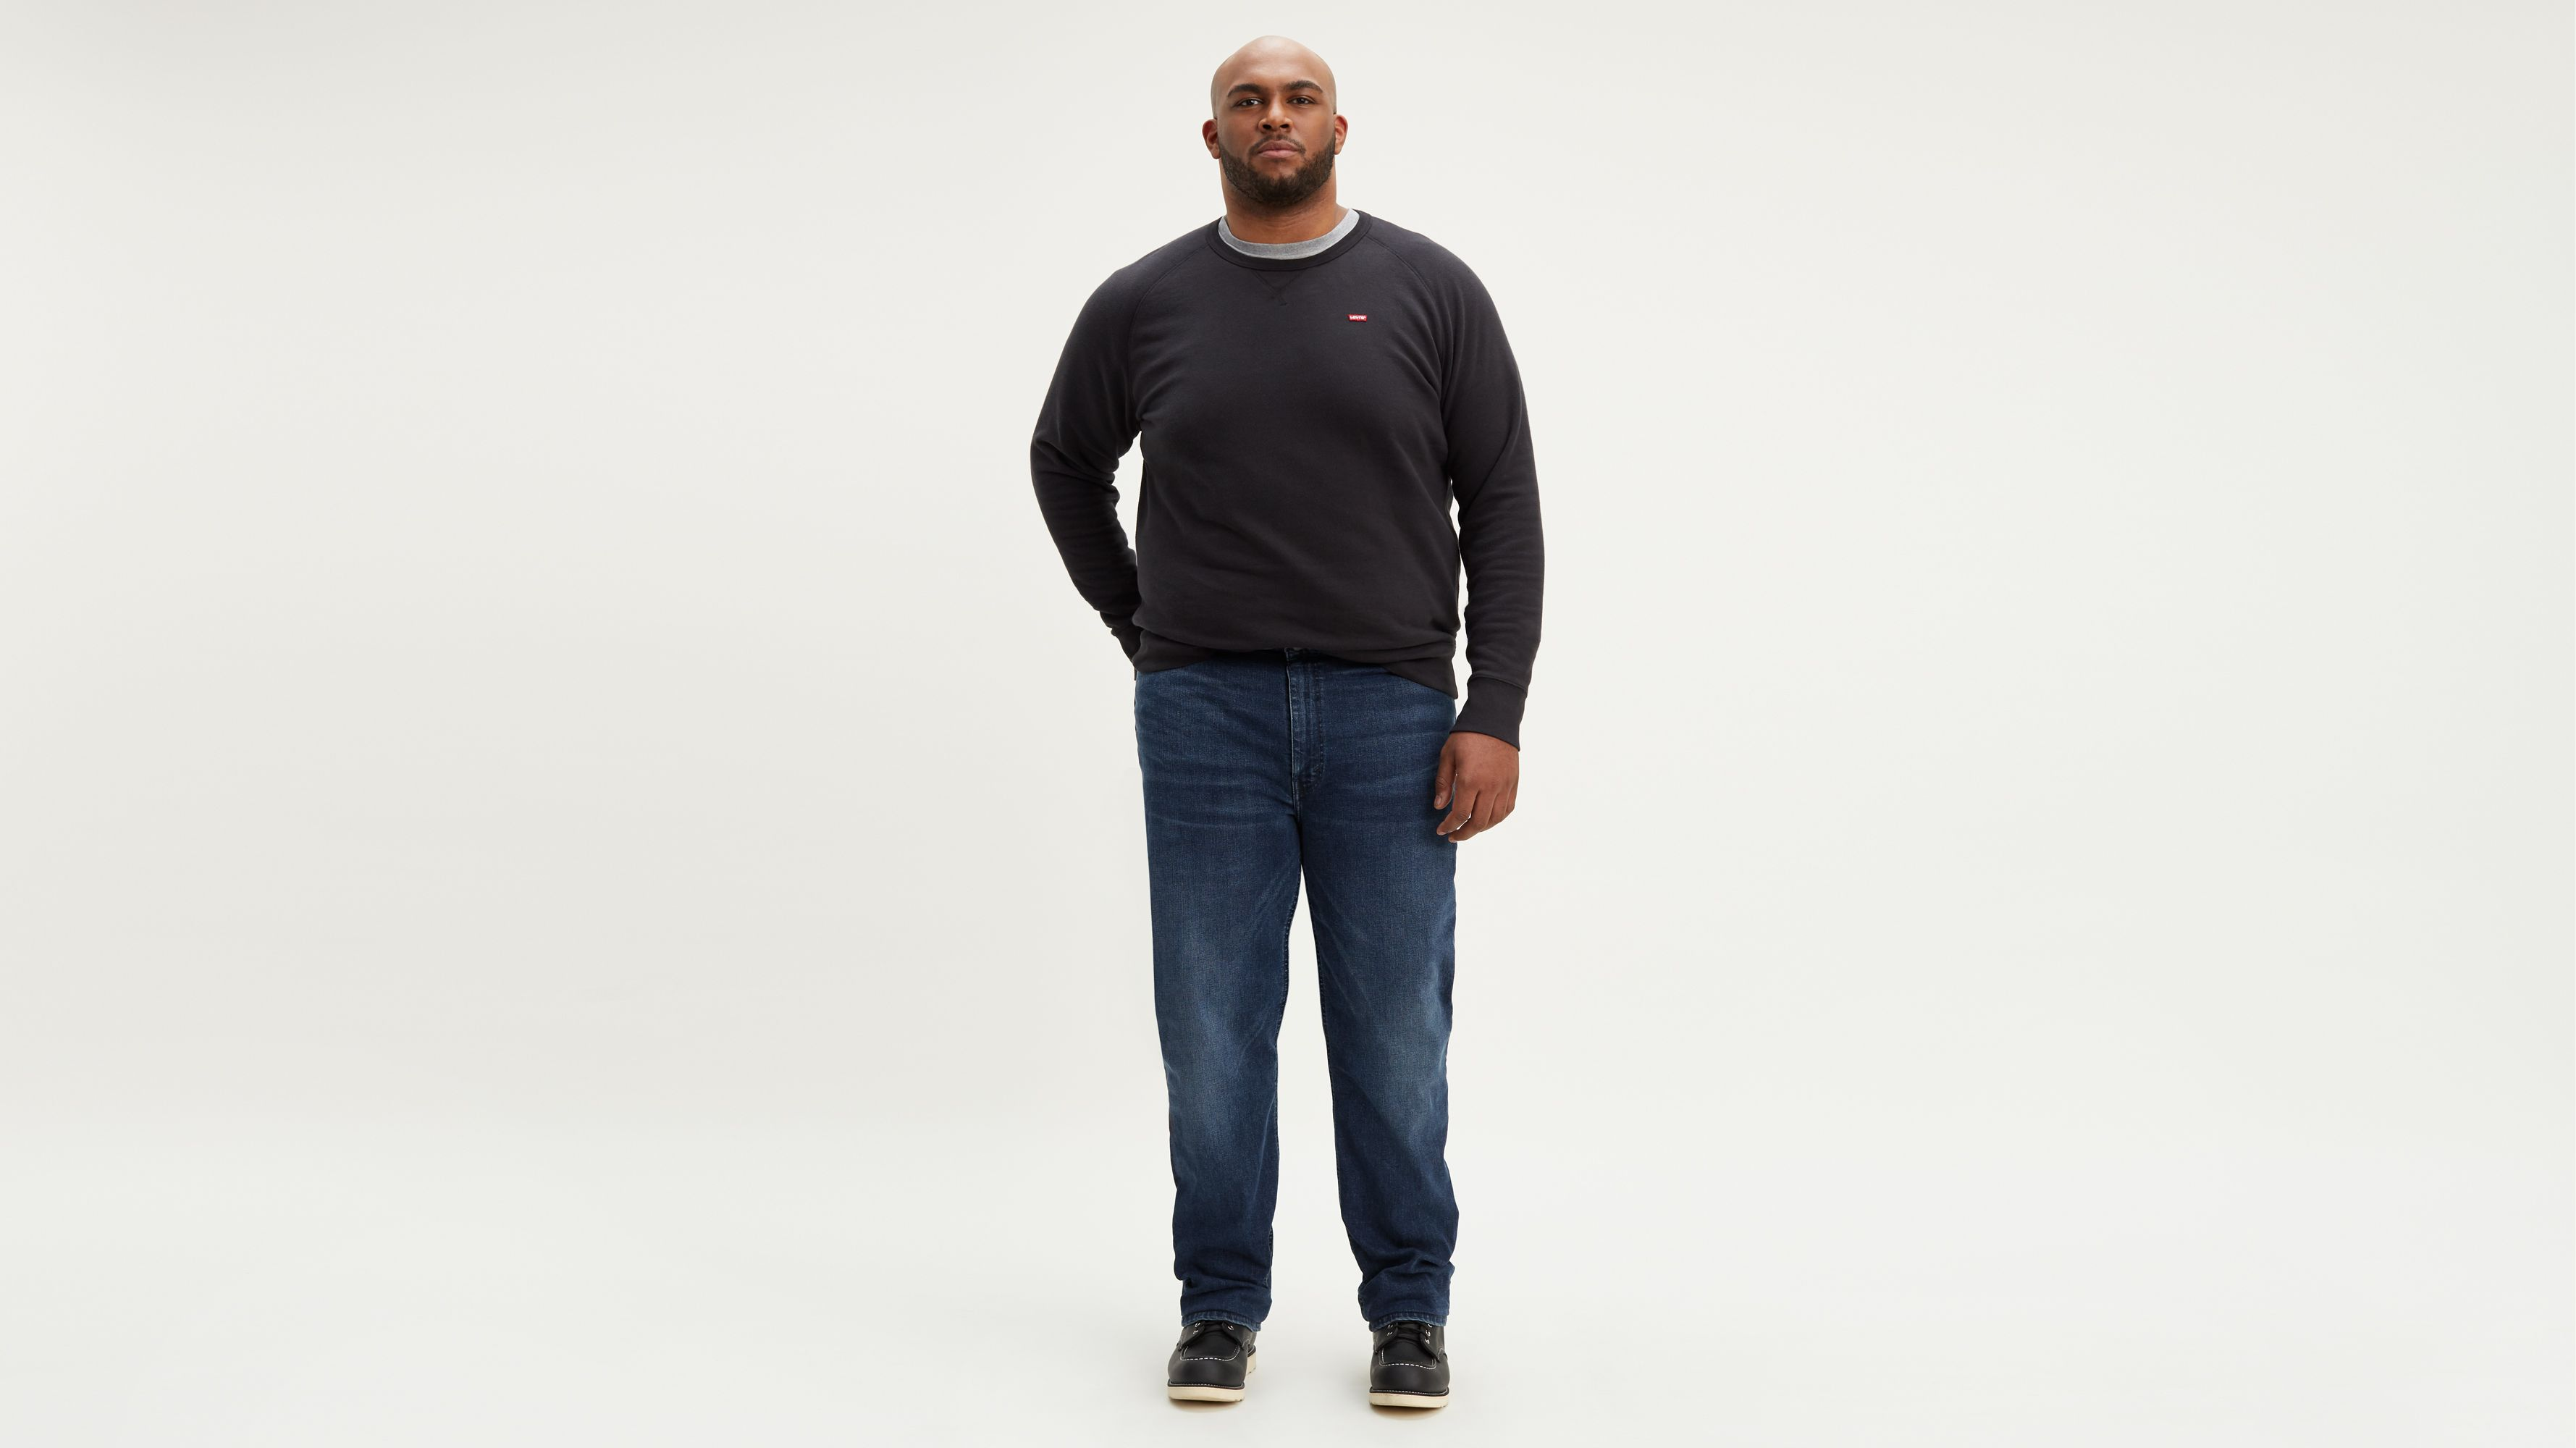 541™ Athletic Fit Jeans (Big & Tall)